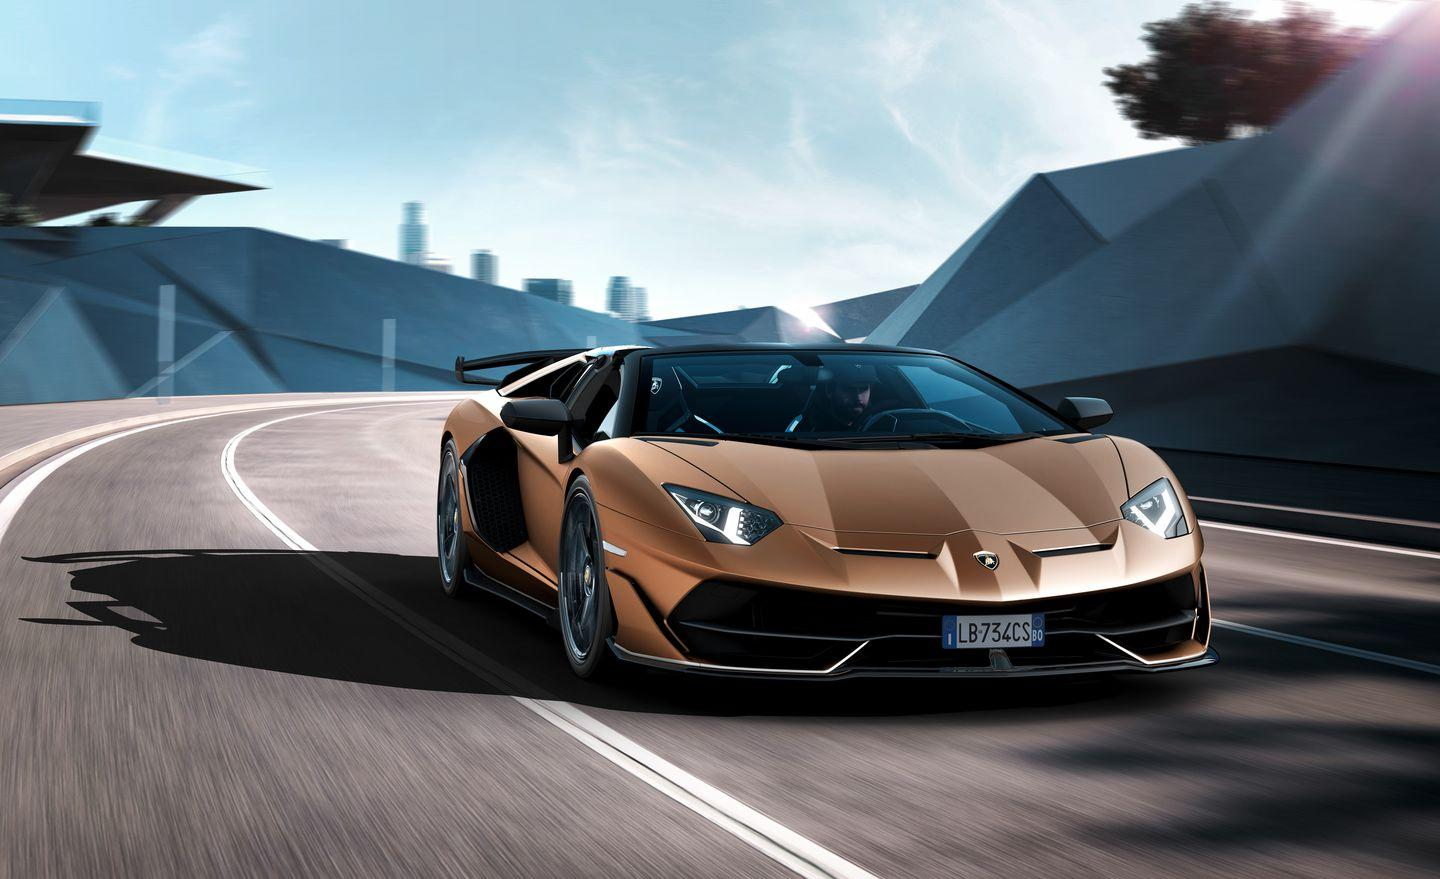 <p>That means an absurd-looking active aerodynamics package and a mid-mounted naturally aspirated 6.5-liter V-12 producing 759 horsepower and 531 lb-ft of torque.</p>